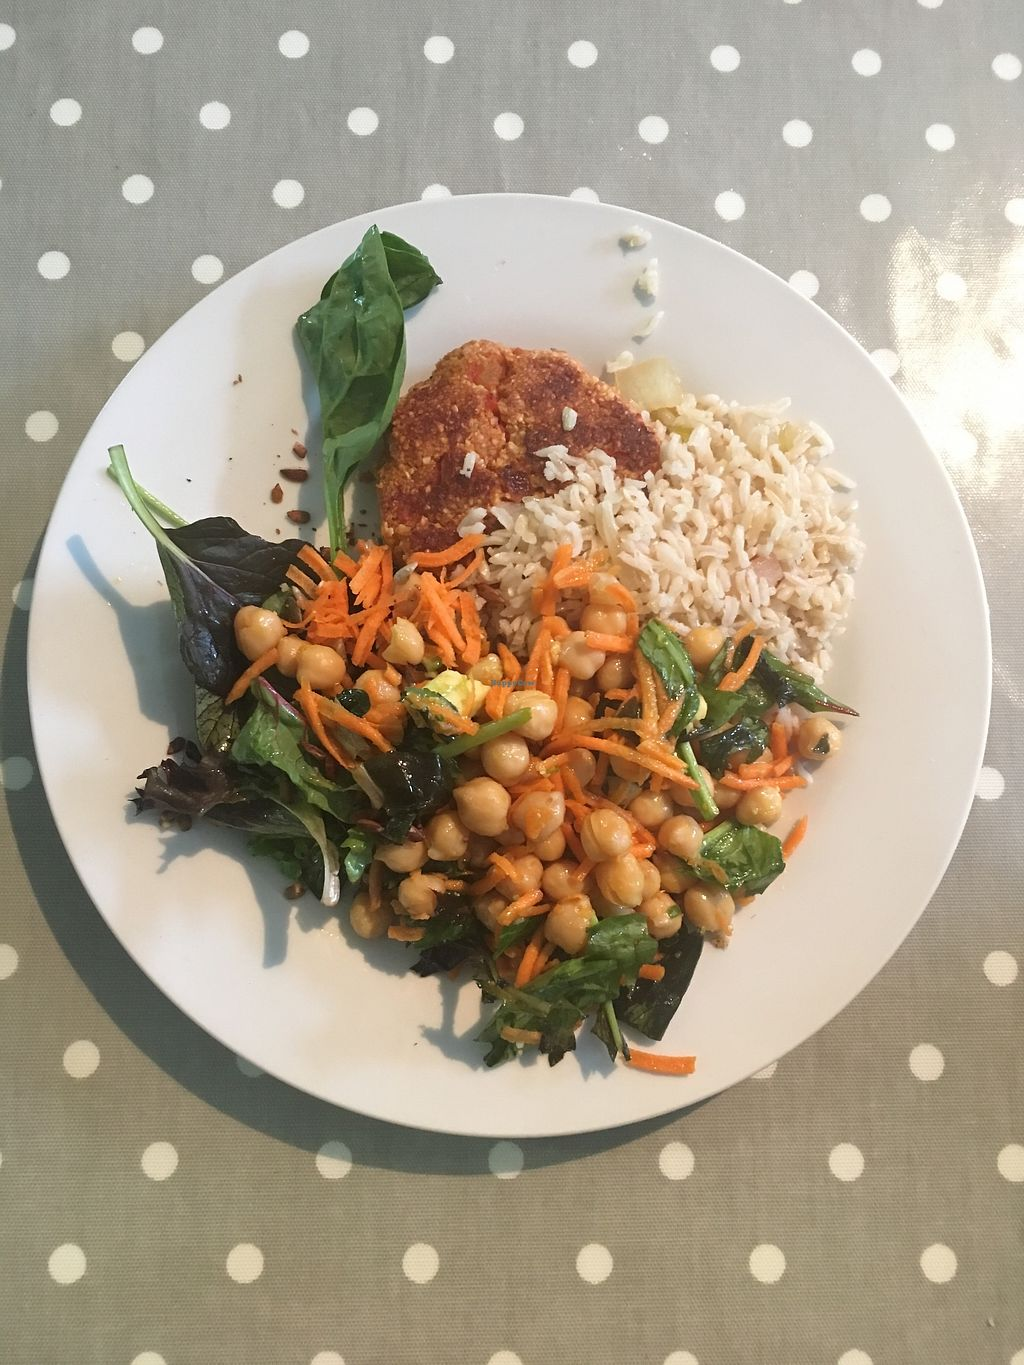 "Photo of The Grove Veggie Kitchen  by <a href=""/members/profile/phashonkat"">phashonkat</a> <br/>The Nut Burger (incredible!!!), chickpea salad and brown rice <br/> July 21, 2017  - <a href='/contact/abuse/image/13869/282846'>Report</a>"